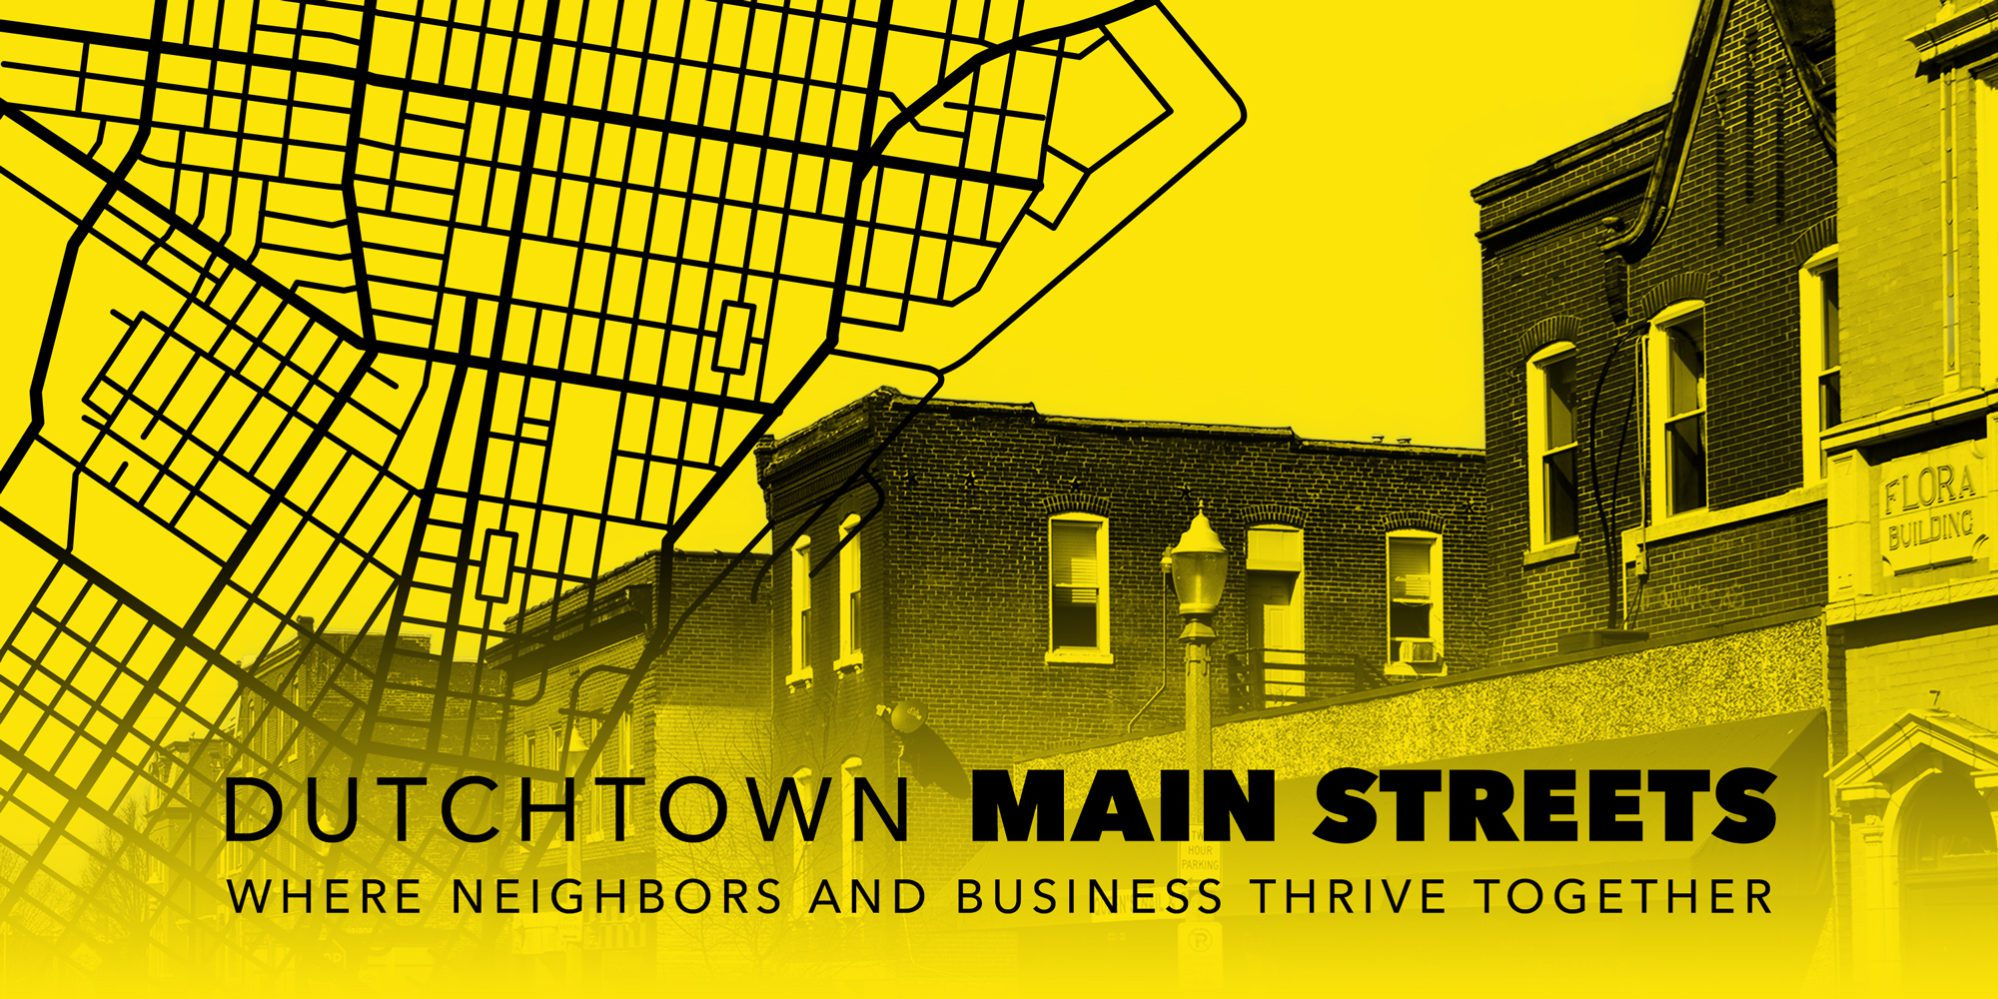 Dutchtown Main Streets: Where neighbors and business thrive together.